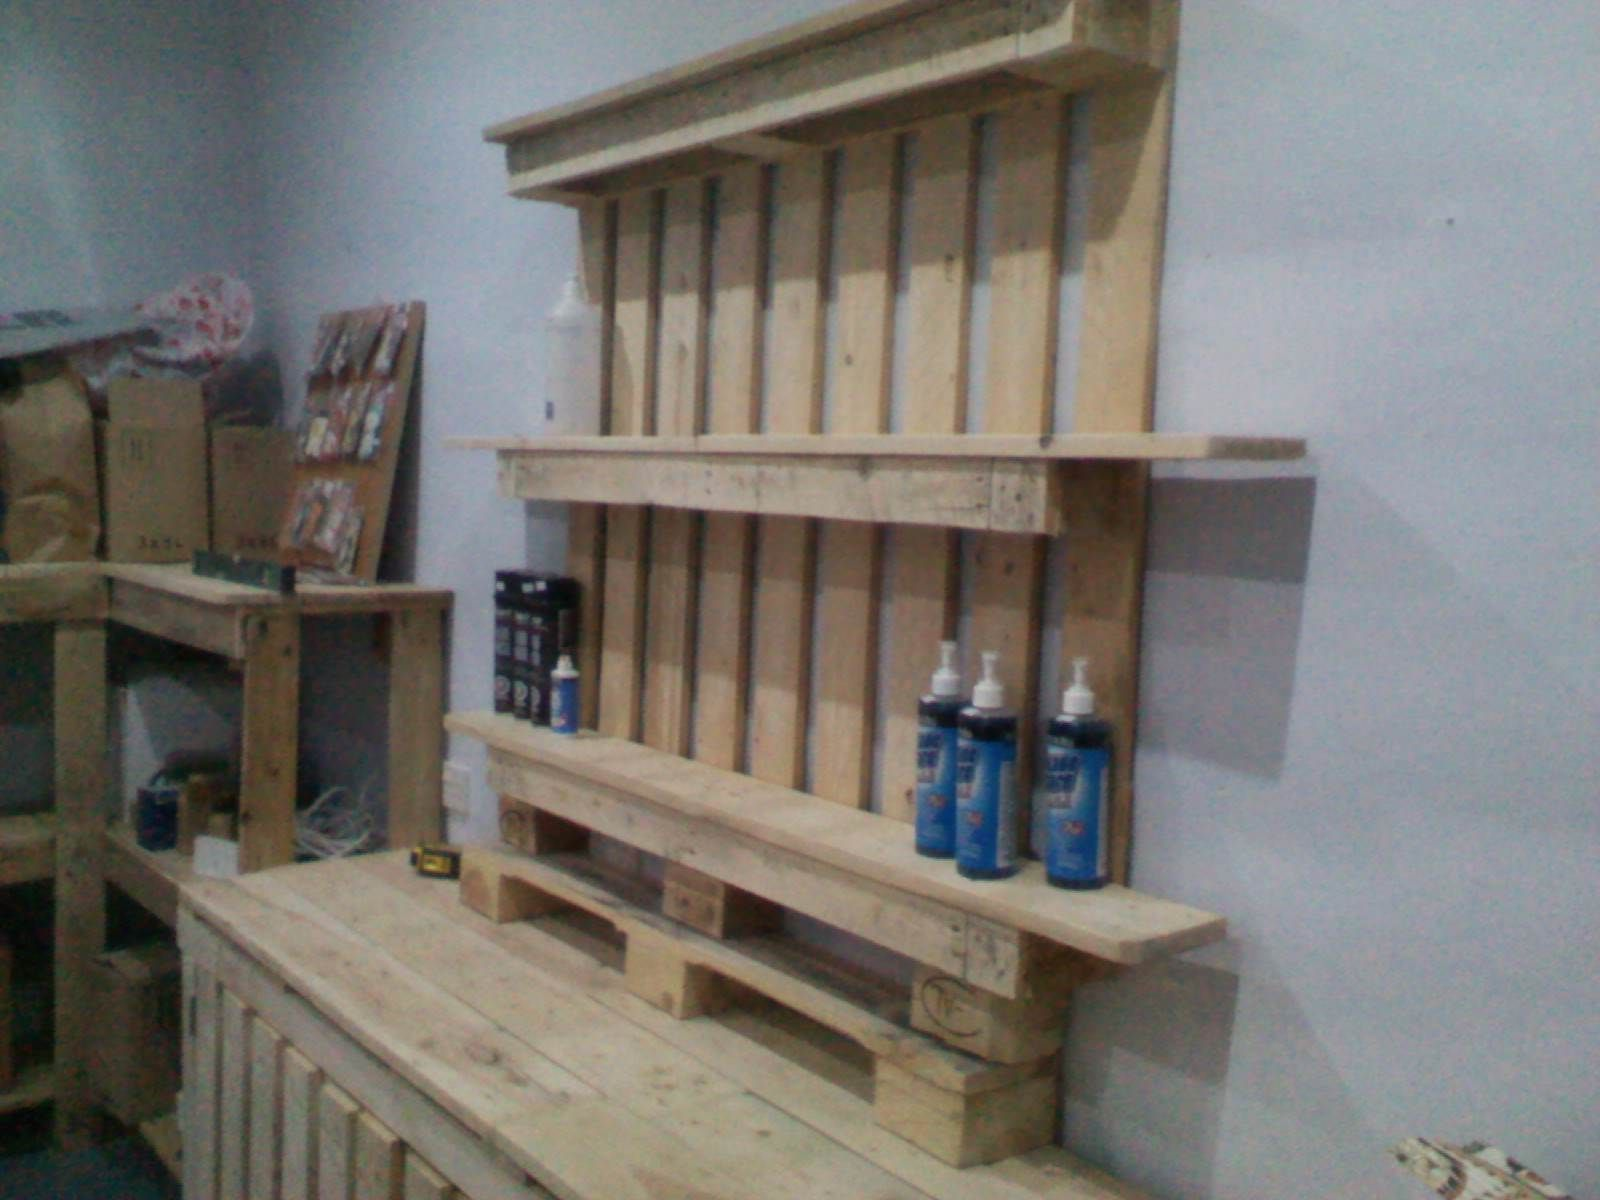 Design Where Can I Buy Wood Pallets shop furniture made out of discarded pallets wooden pallets